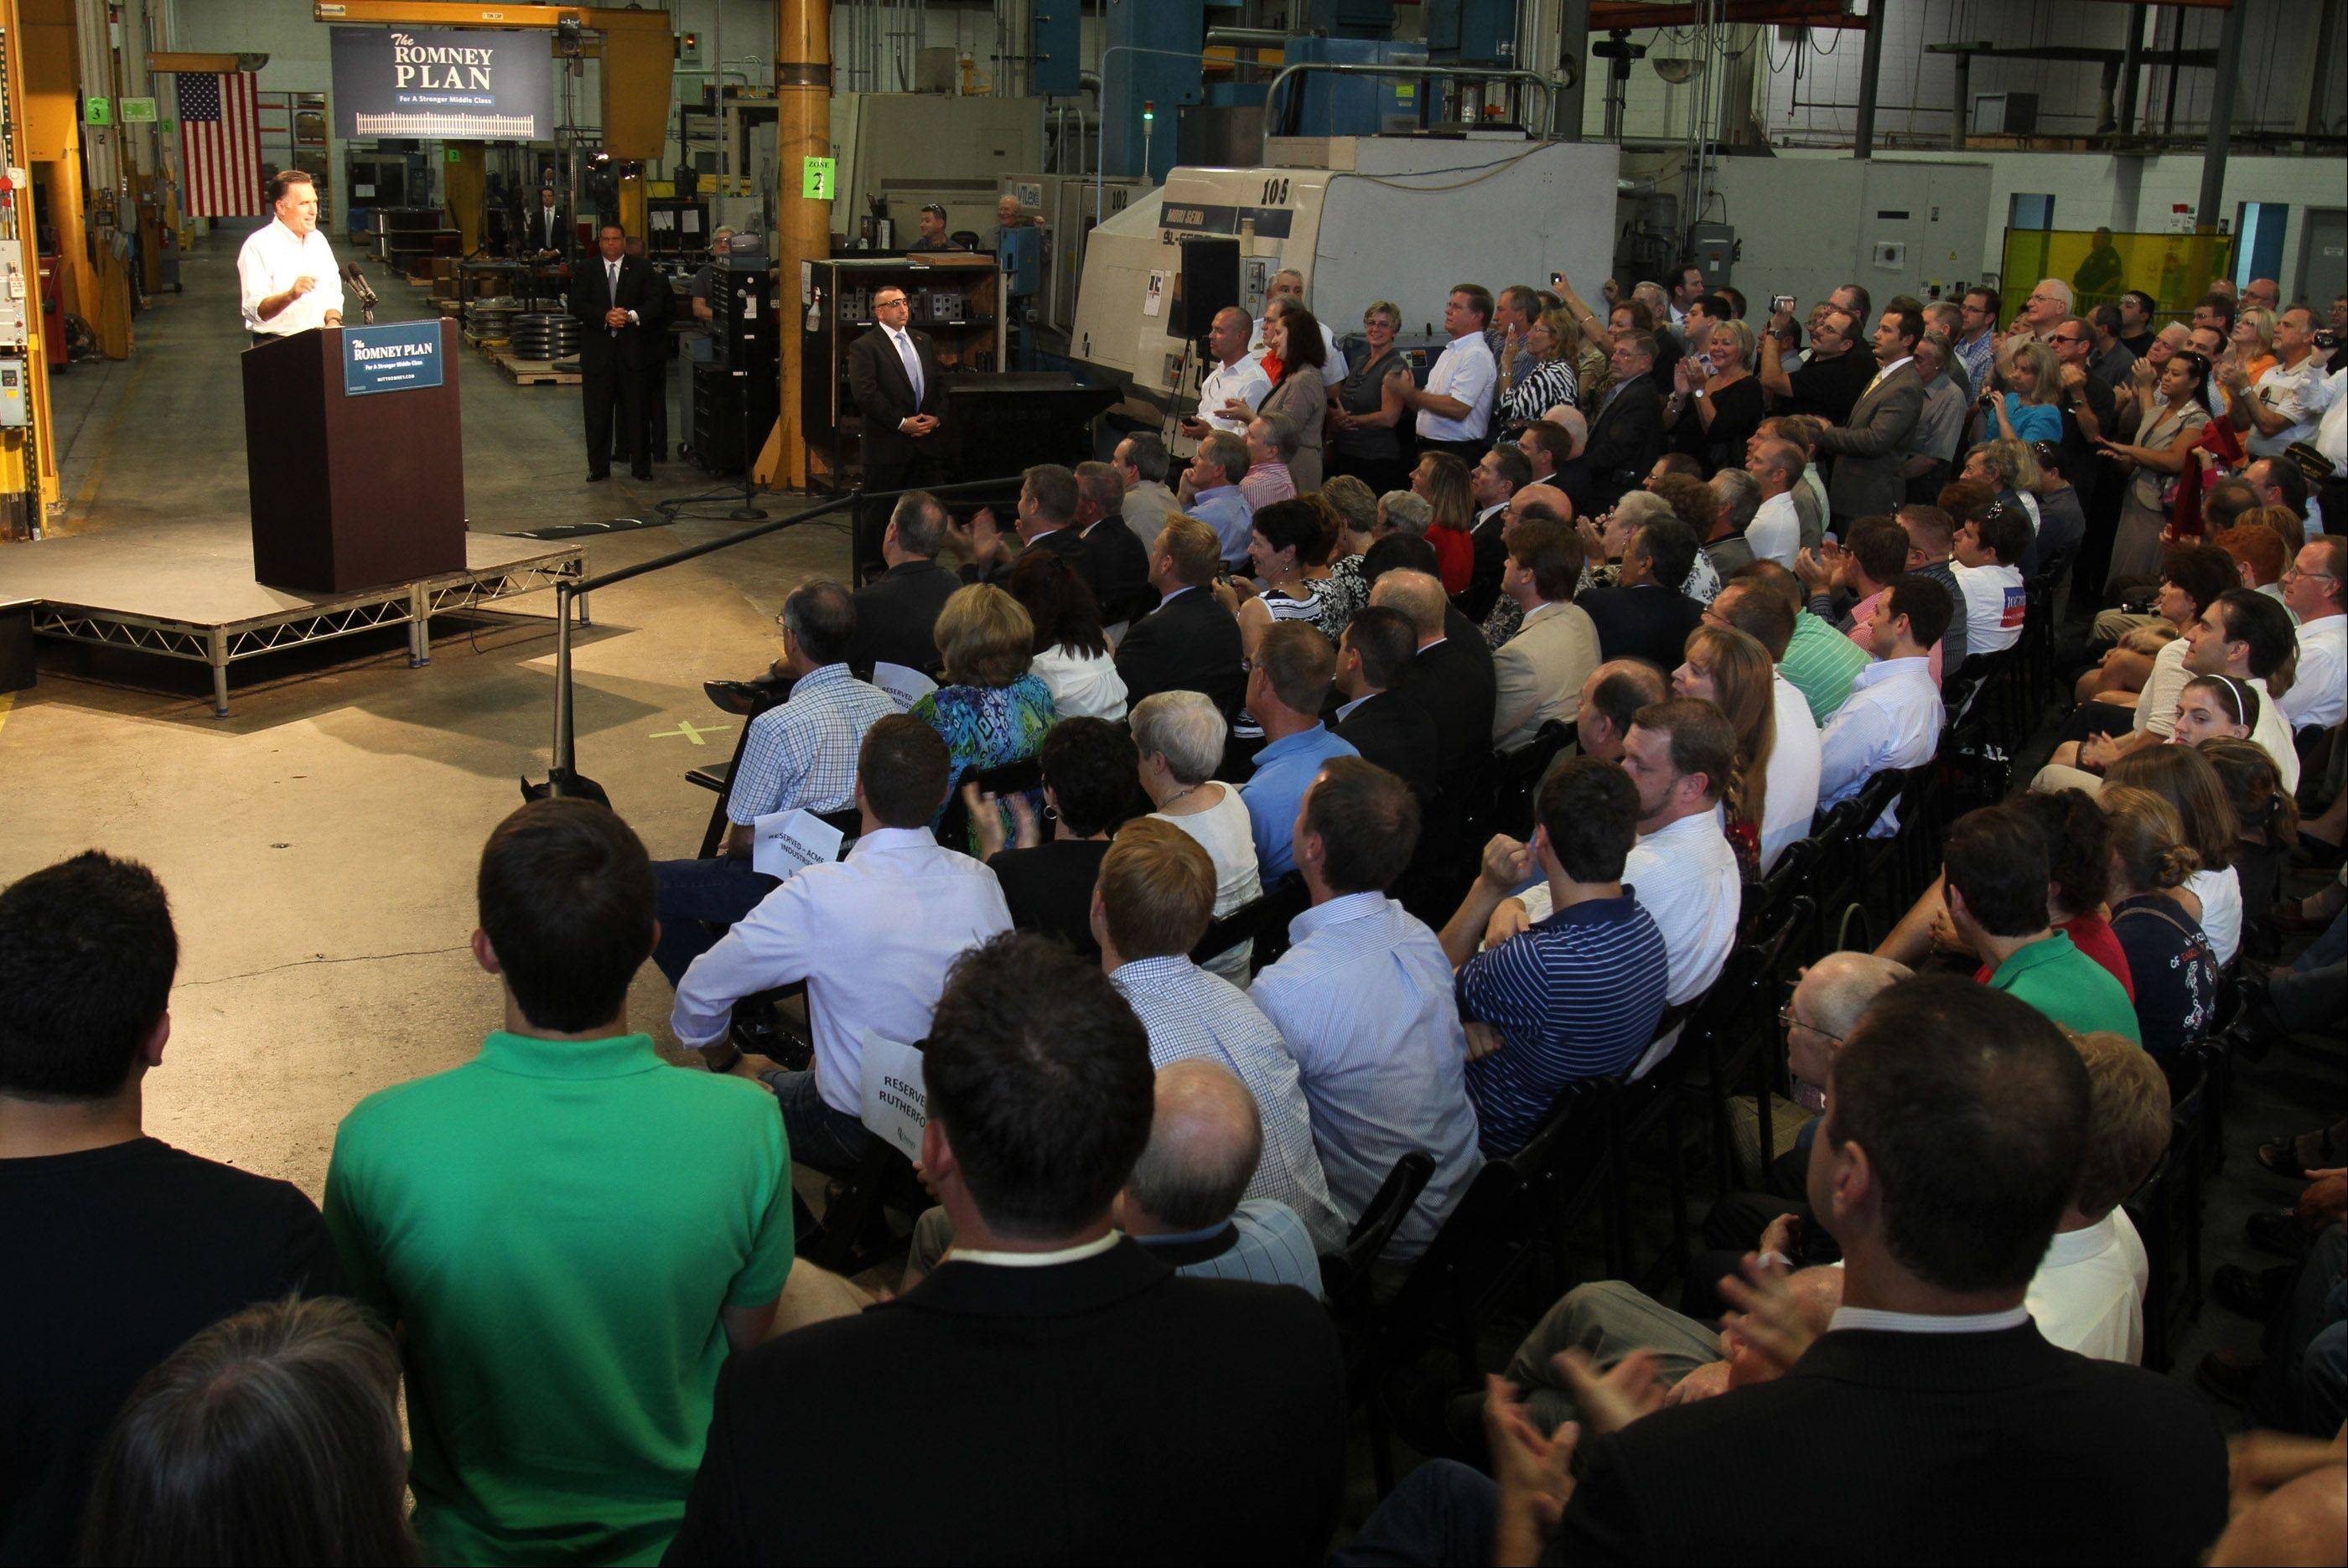 GOP Presidential candidate Mitt Romney speaks at Acme Industries in Elk Grove Village on Tuesday, August 7.